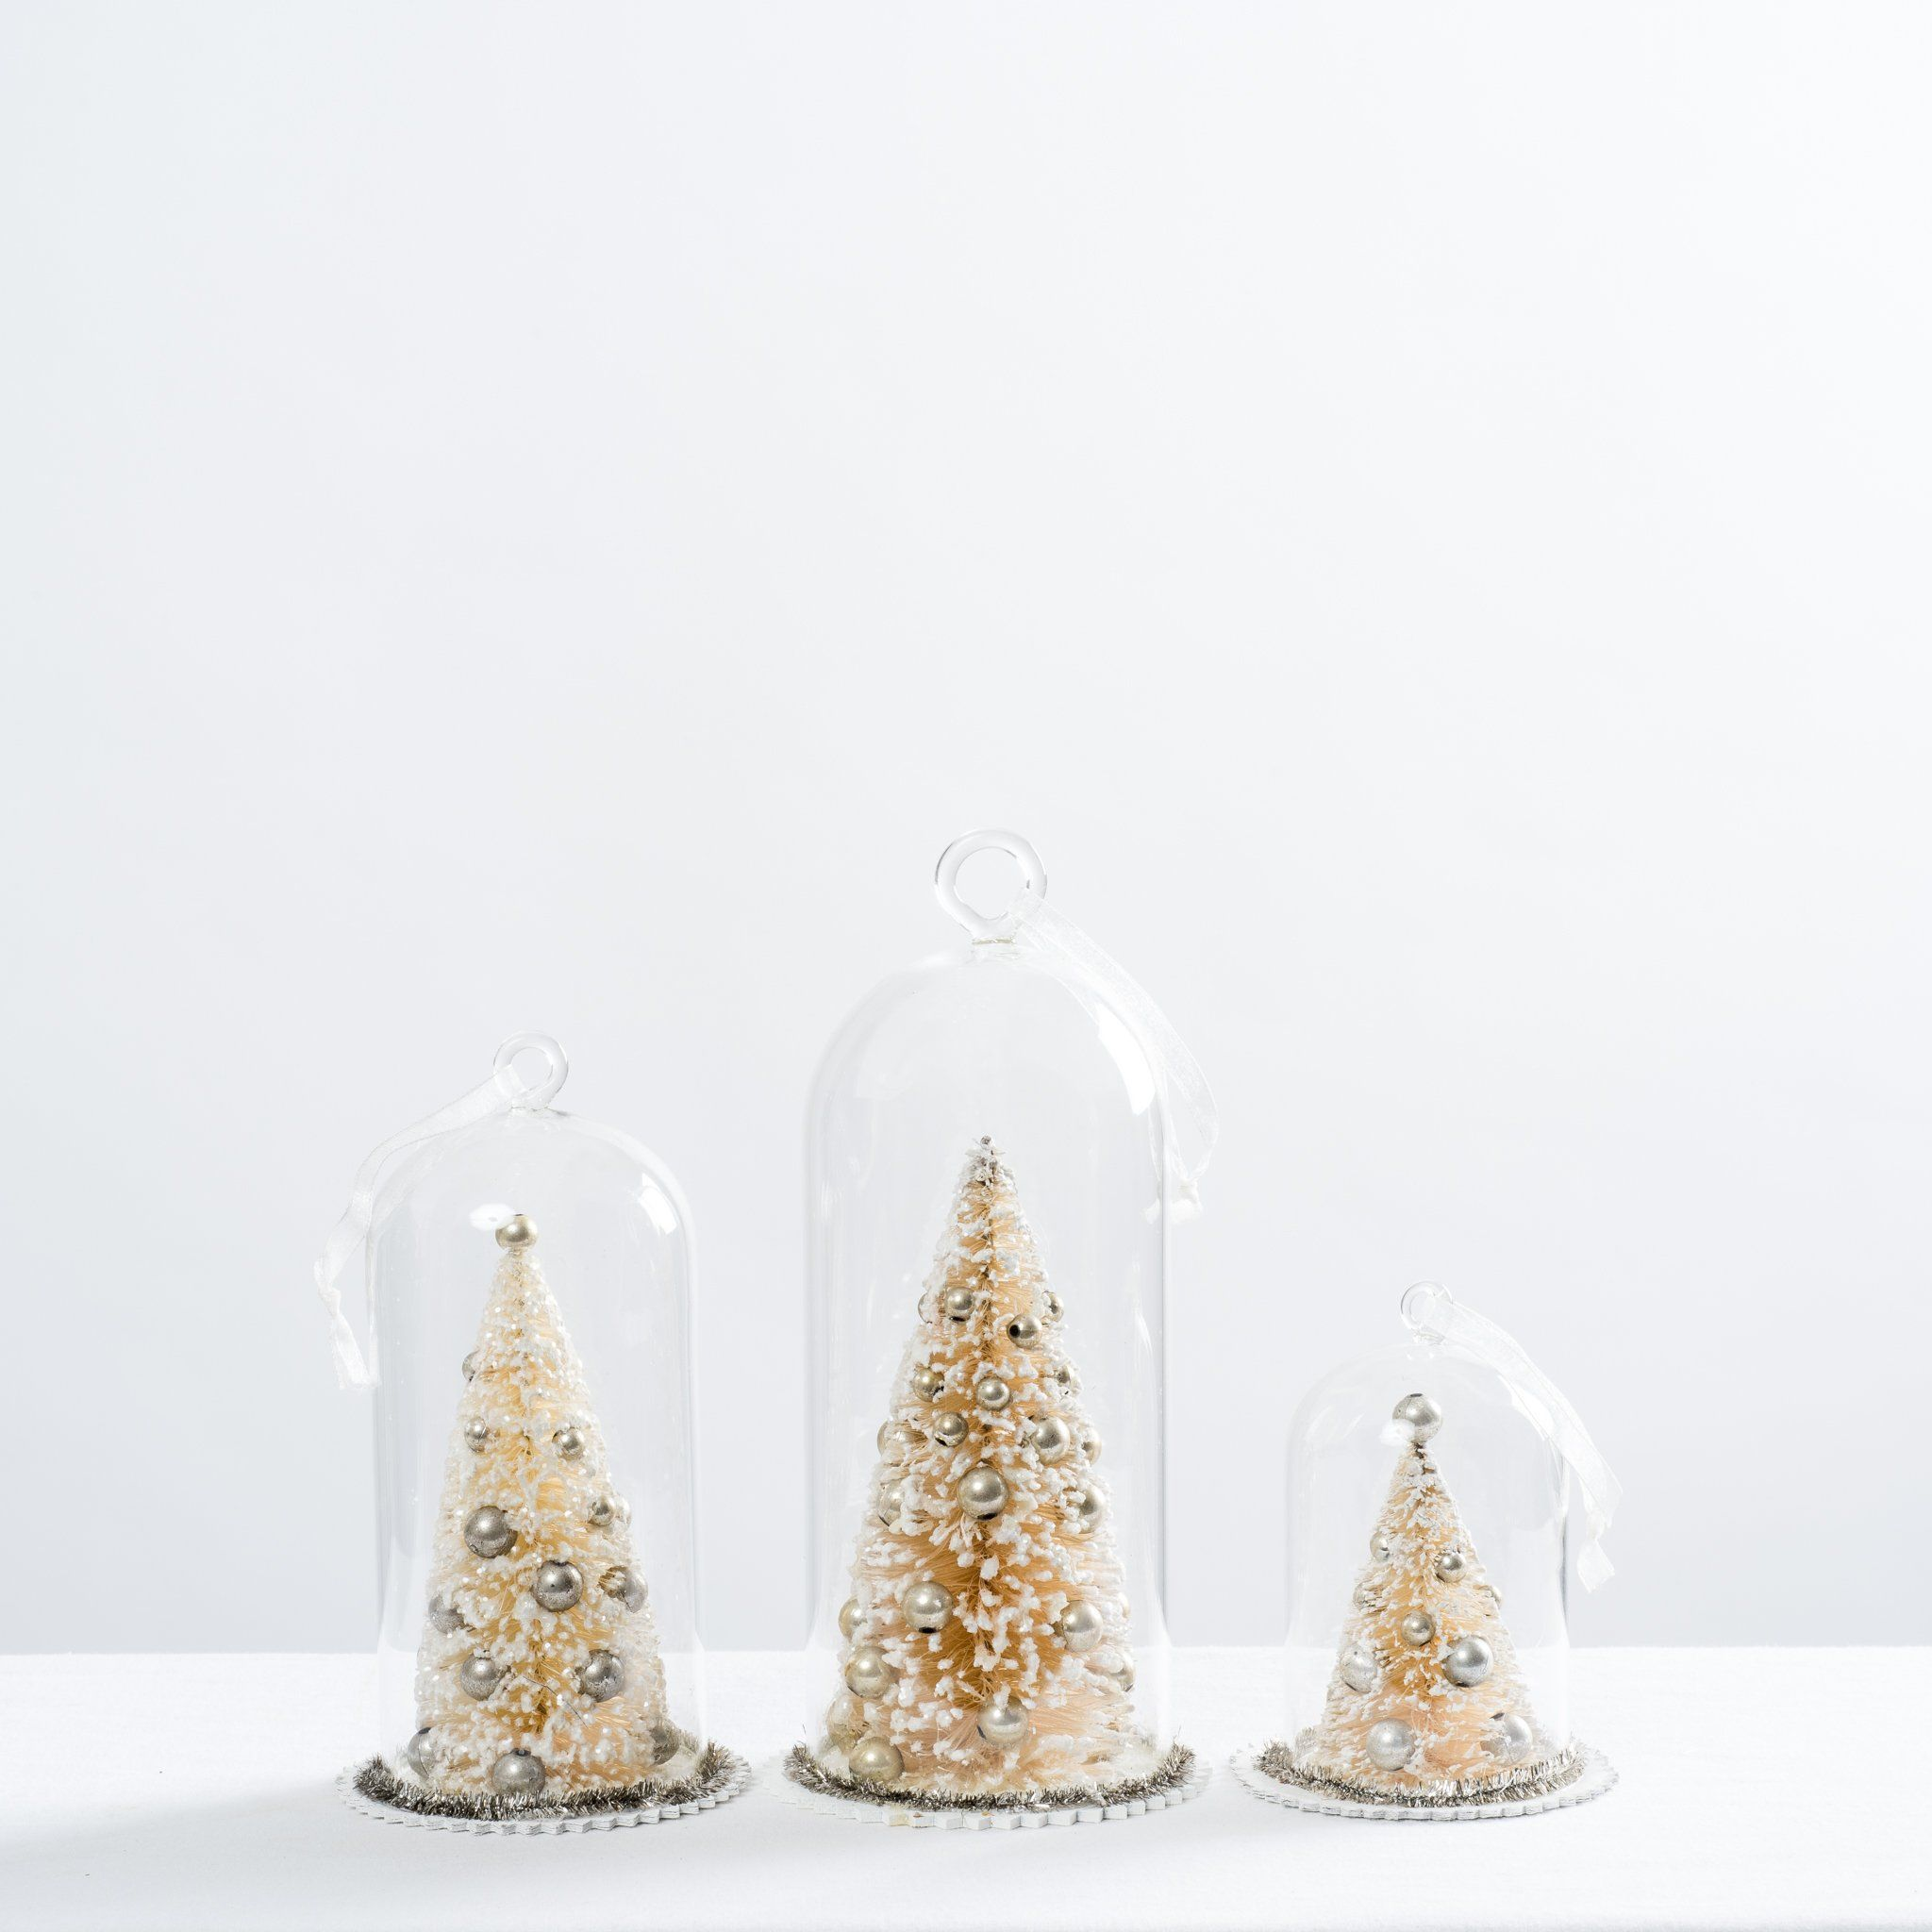 1b0f0bddfc6520 White Christmas Tree Cloche Ornament - Magnolia Market | Chip & Joanna  Gaines